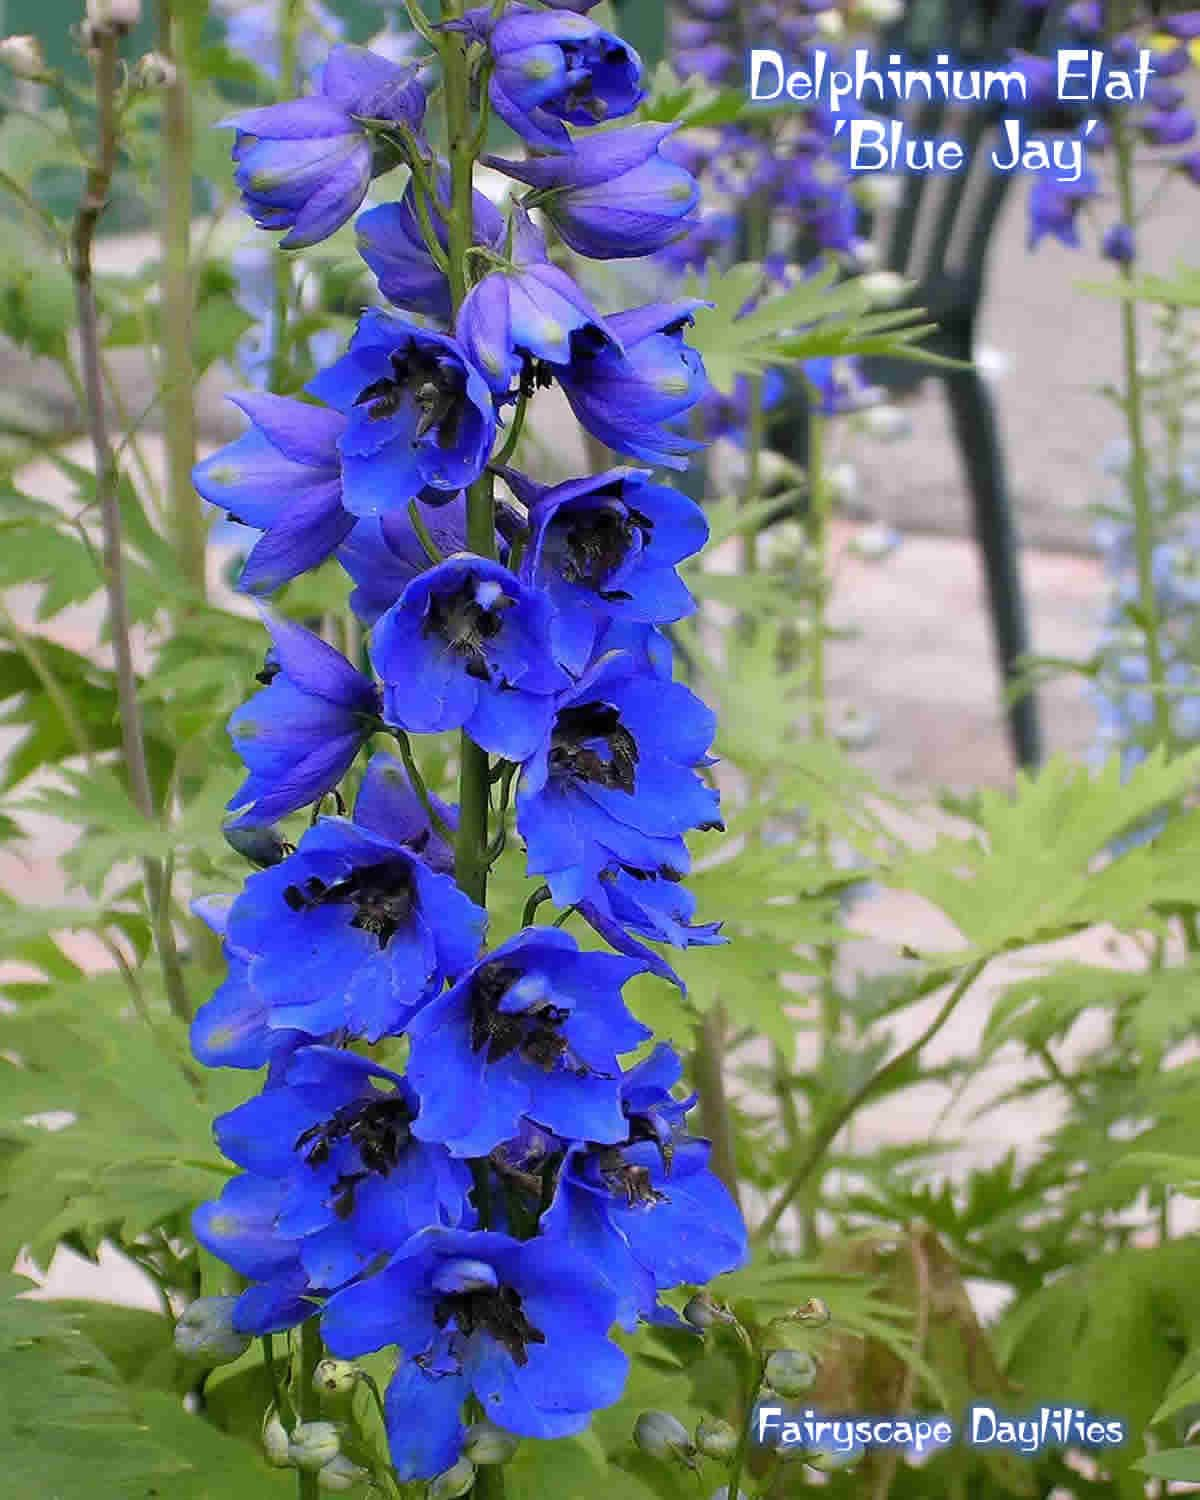 Delphinium Flowers Meanings The symbolic meaning of the delphinium is big hea